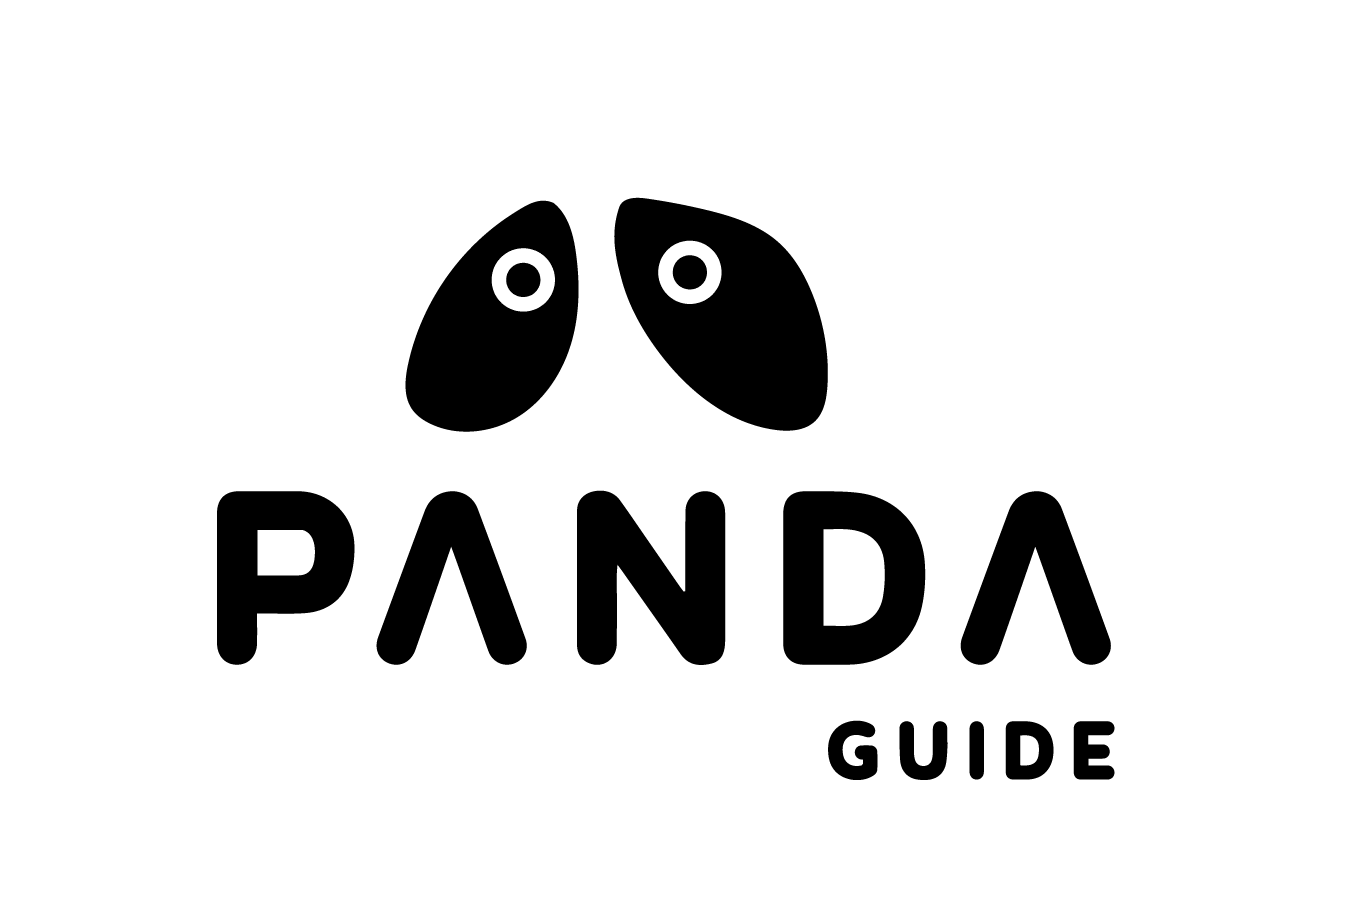 Panda for visually impaired people